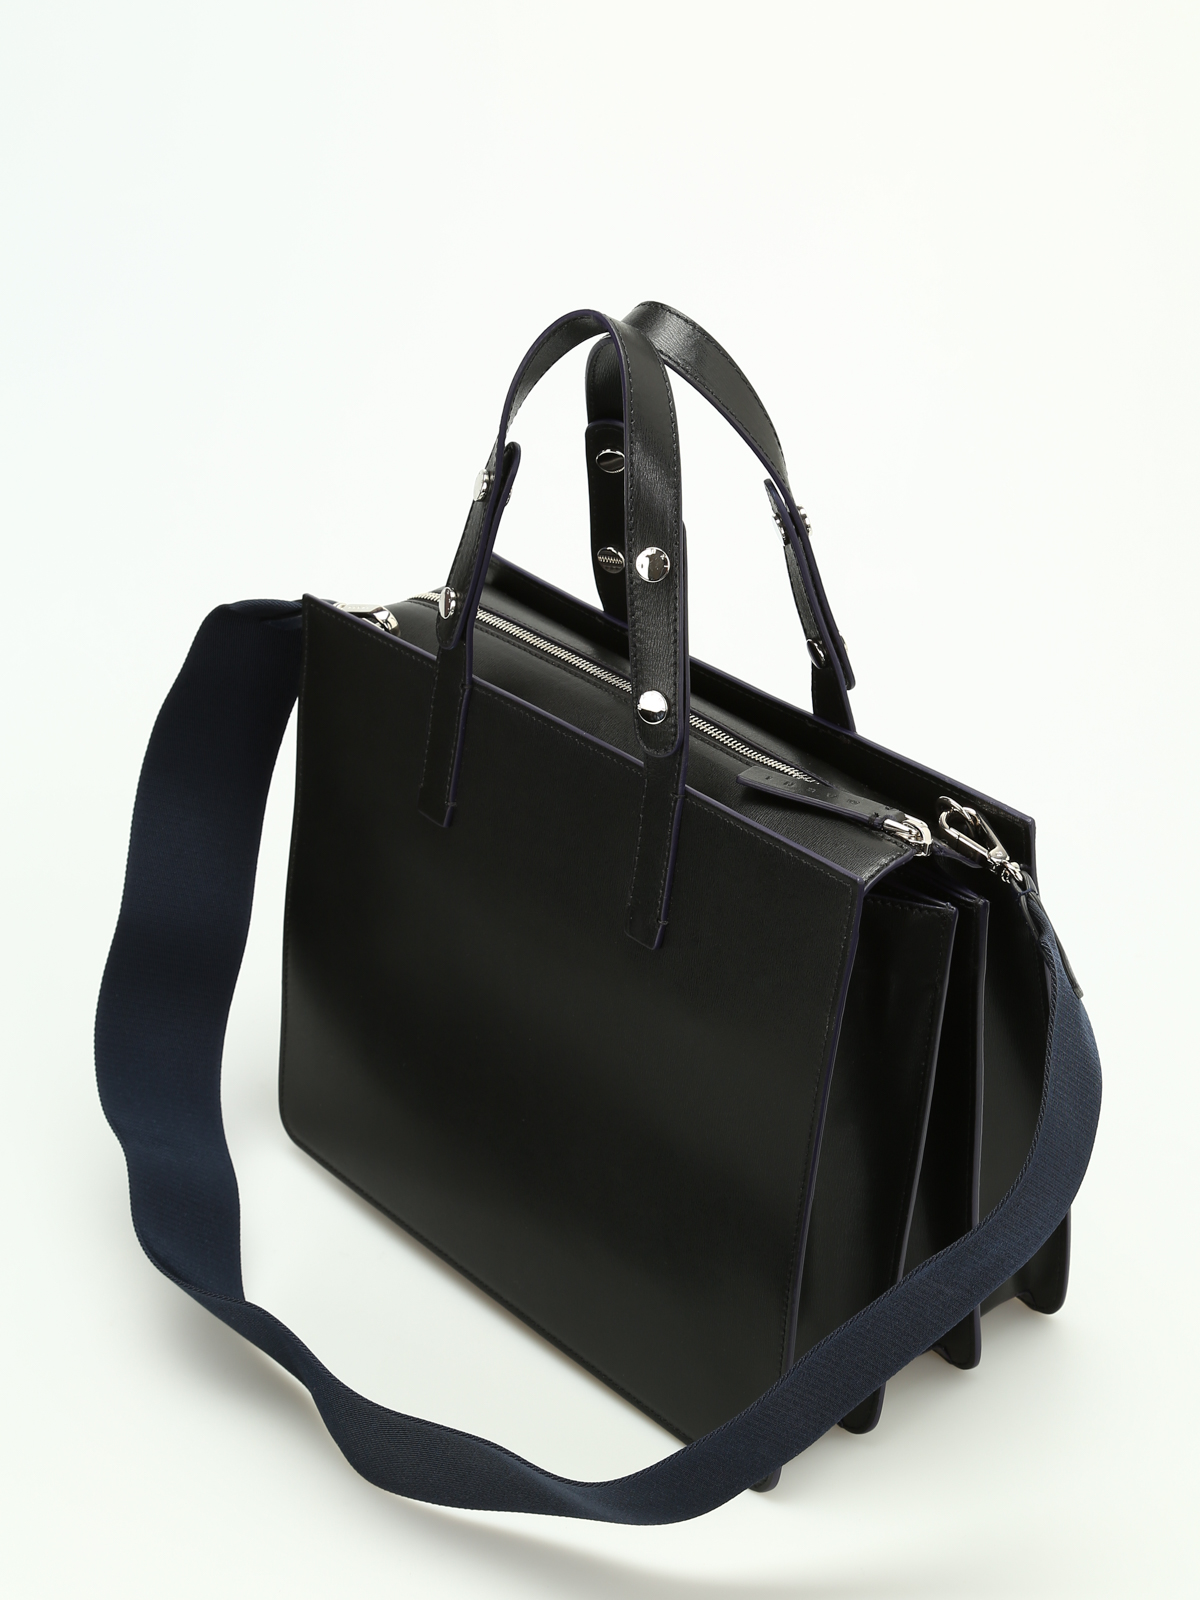 Trunk tote bag - Black Marni Hurry Up Best Prices mbd08WE